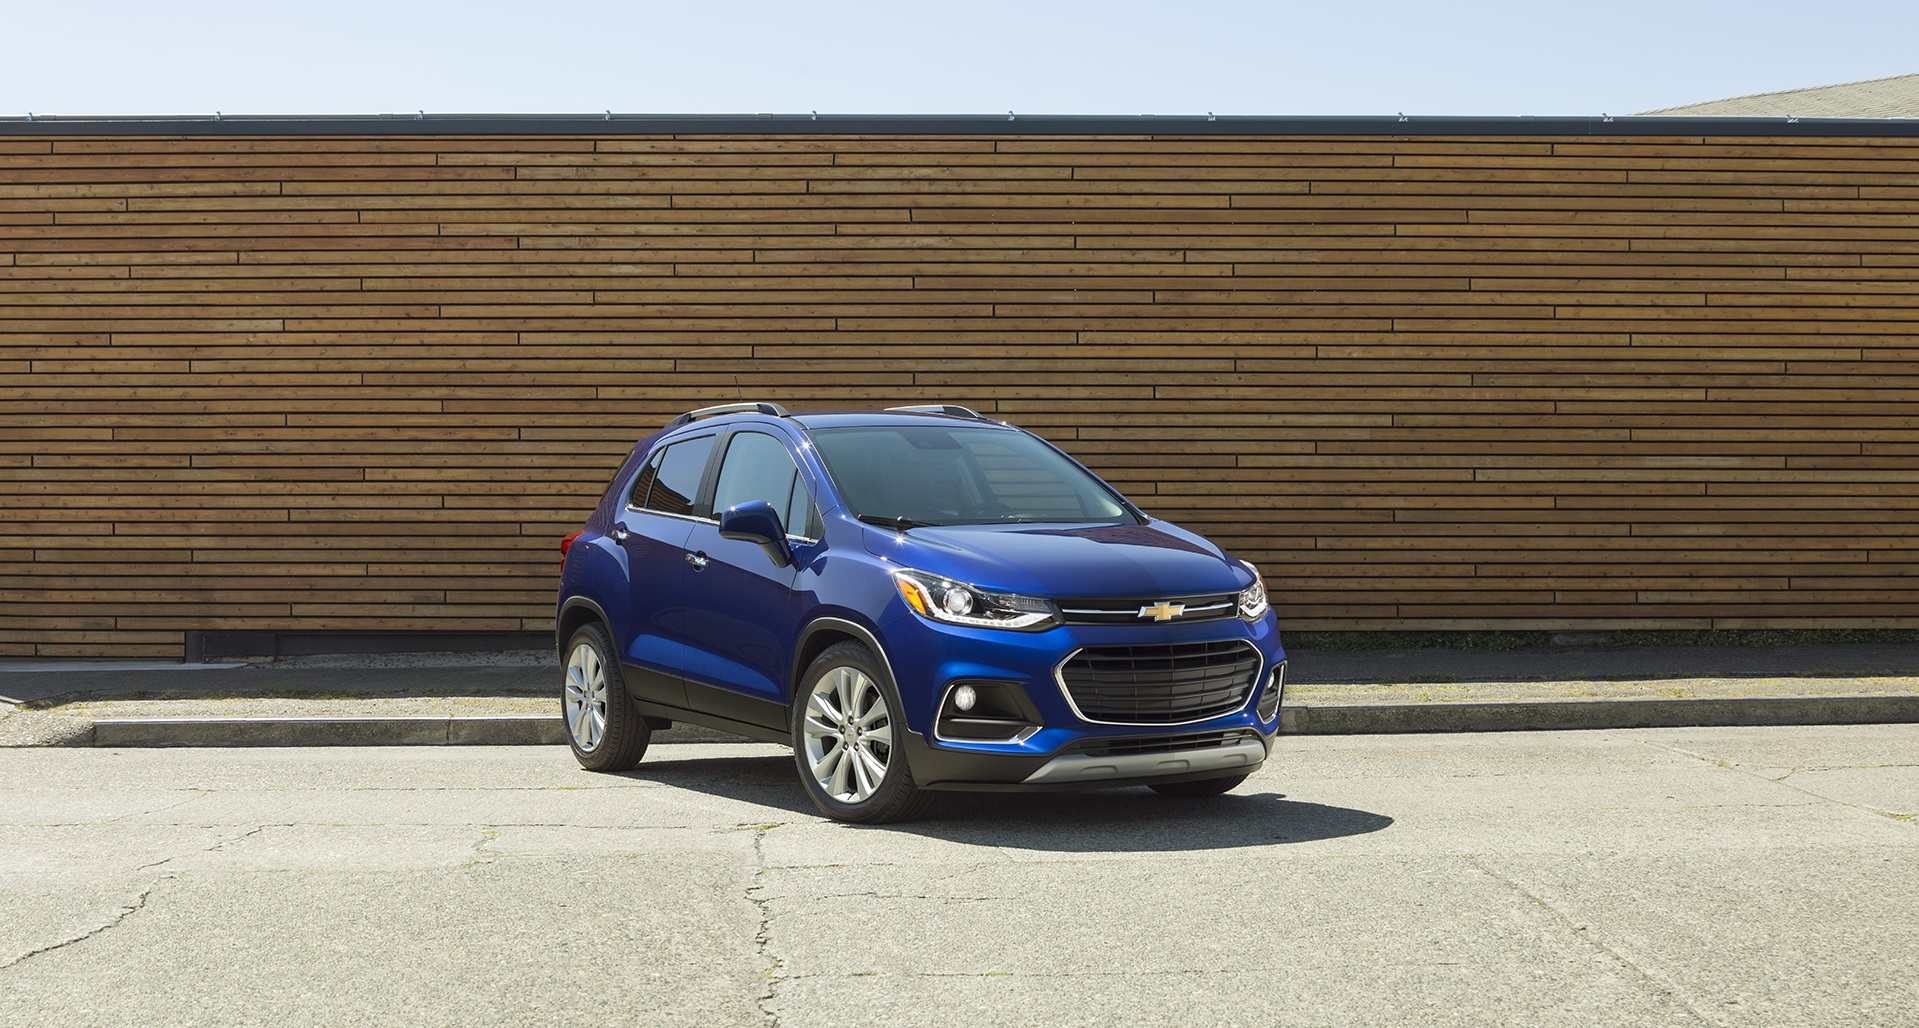 2018 chevrolet trax chevy review ratings specs prices and photos daily carverse. Black Bedroom Furniture Sets. Home Design Ideas